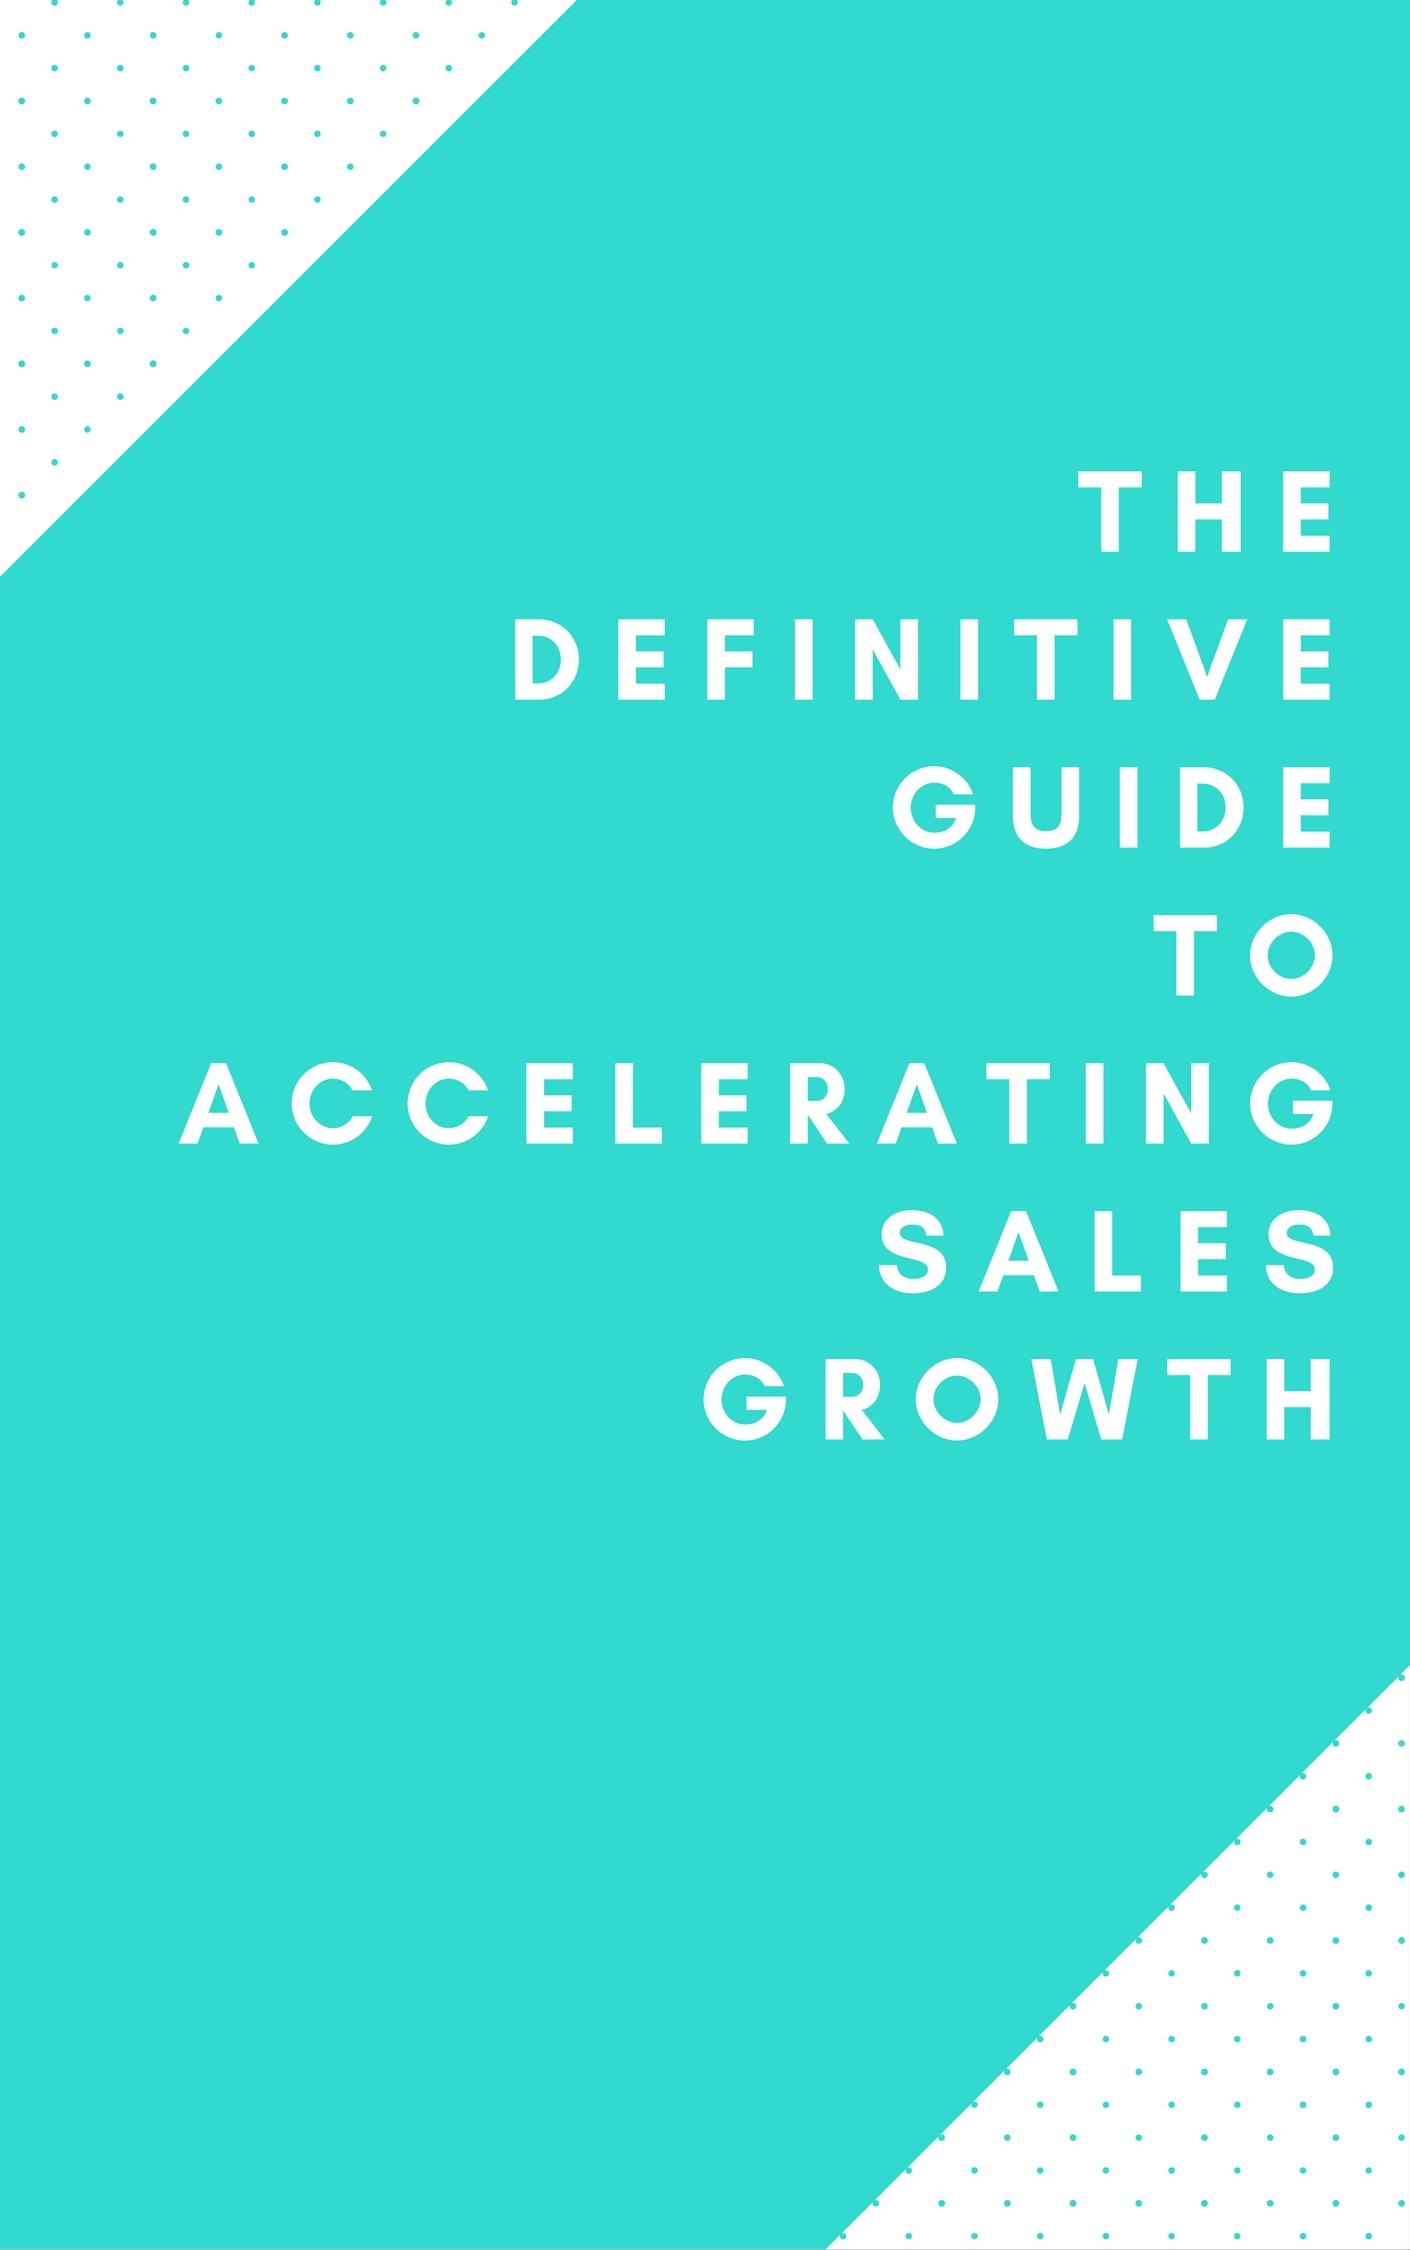 The_Definitive_Guide_to_Accelerating_Sales_Growth.jpg